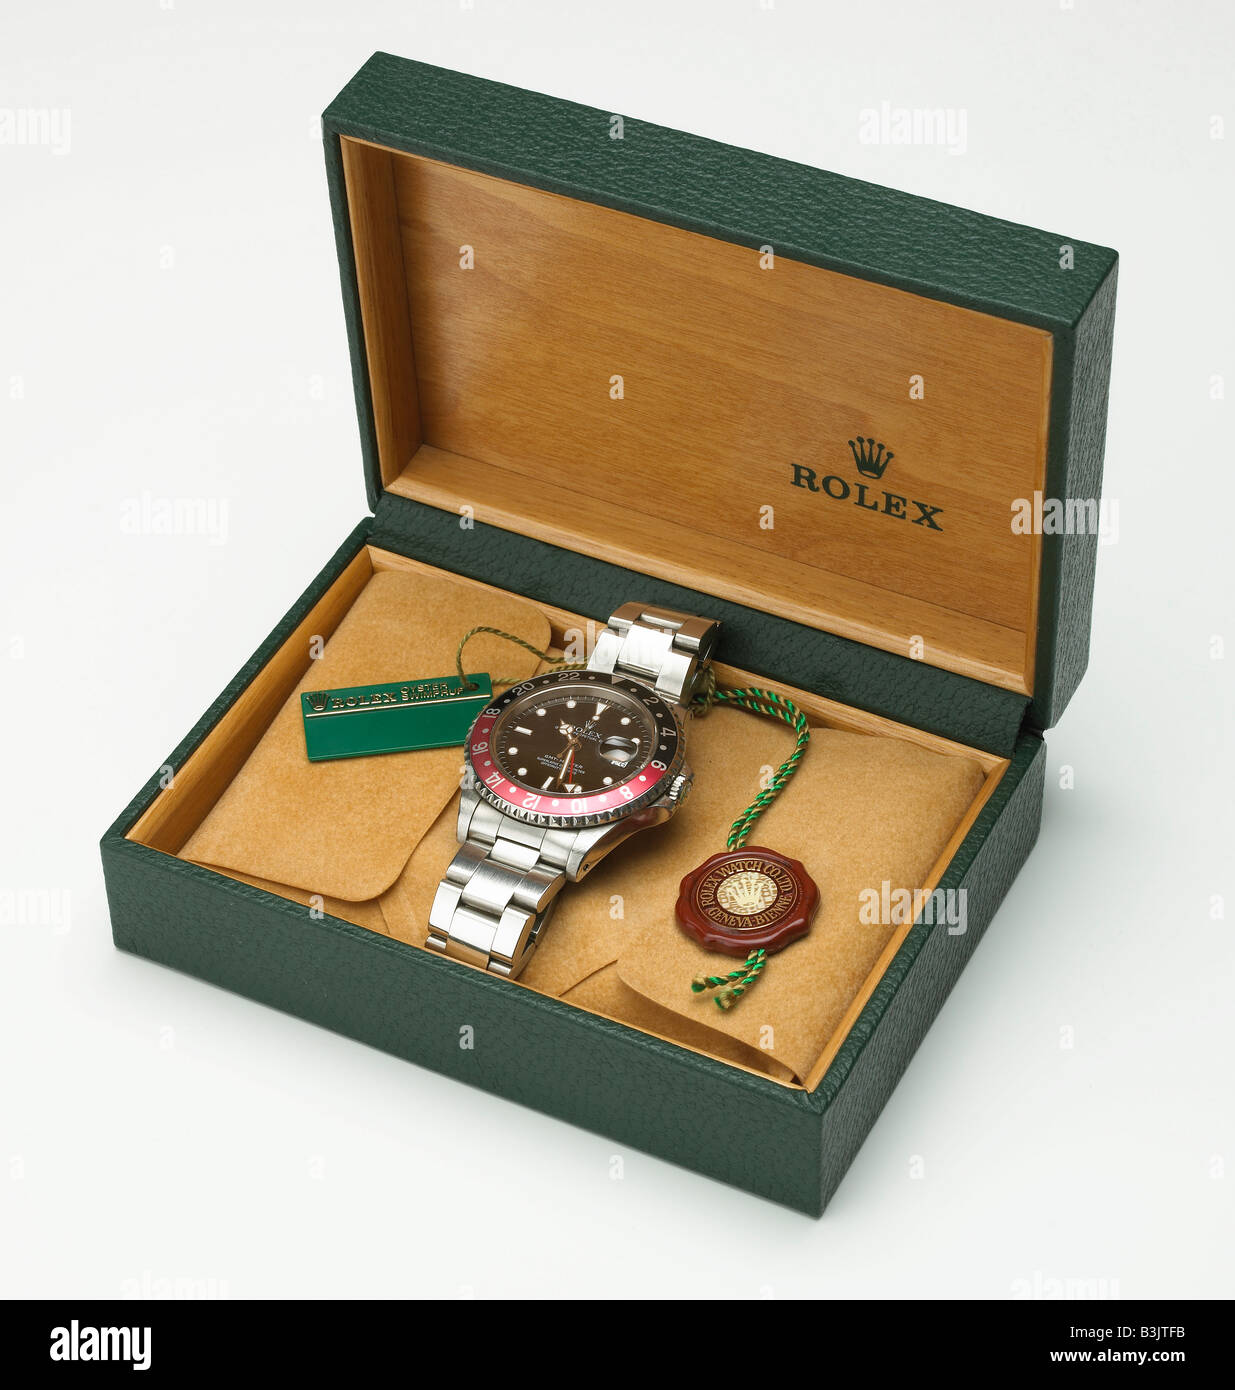 ROLEX GMT MASTER STAINLESS STEEL SWISS WATCH - Stock Image